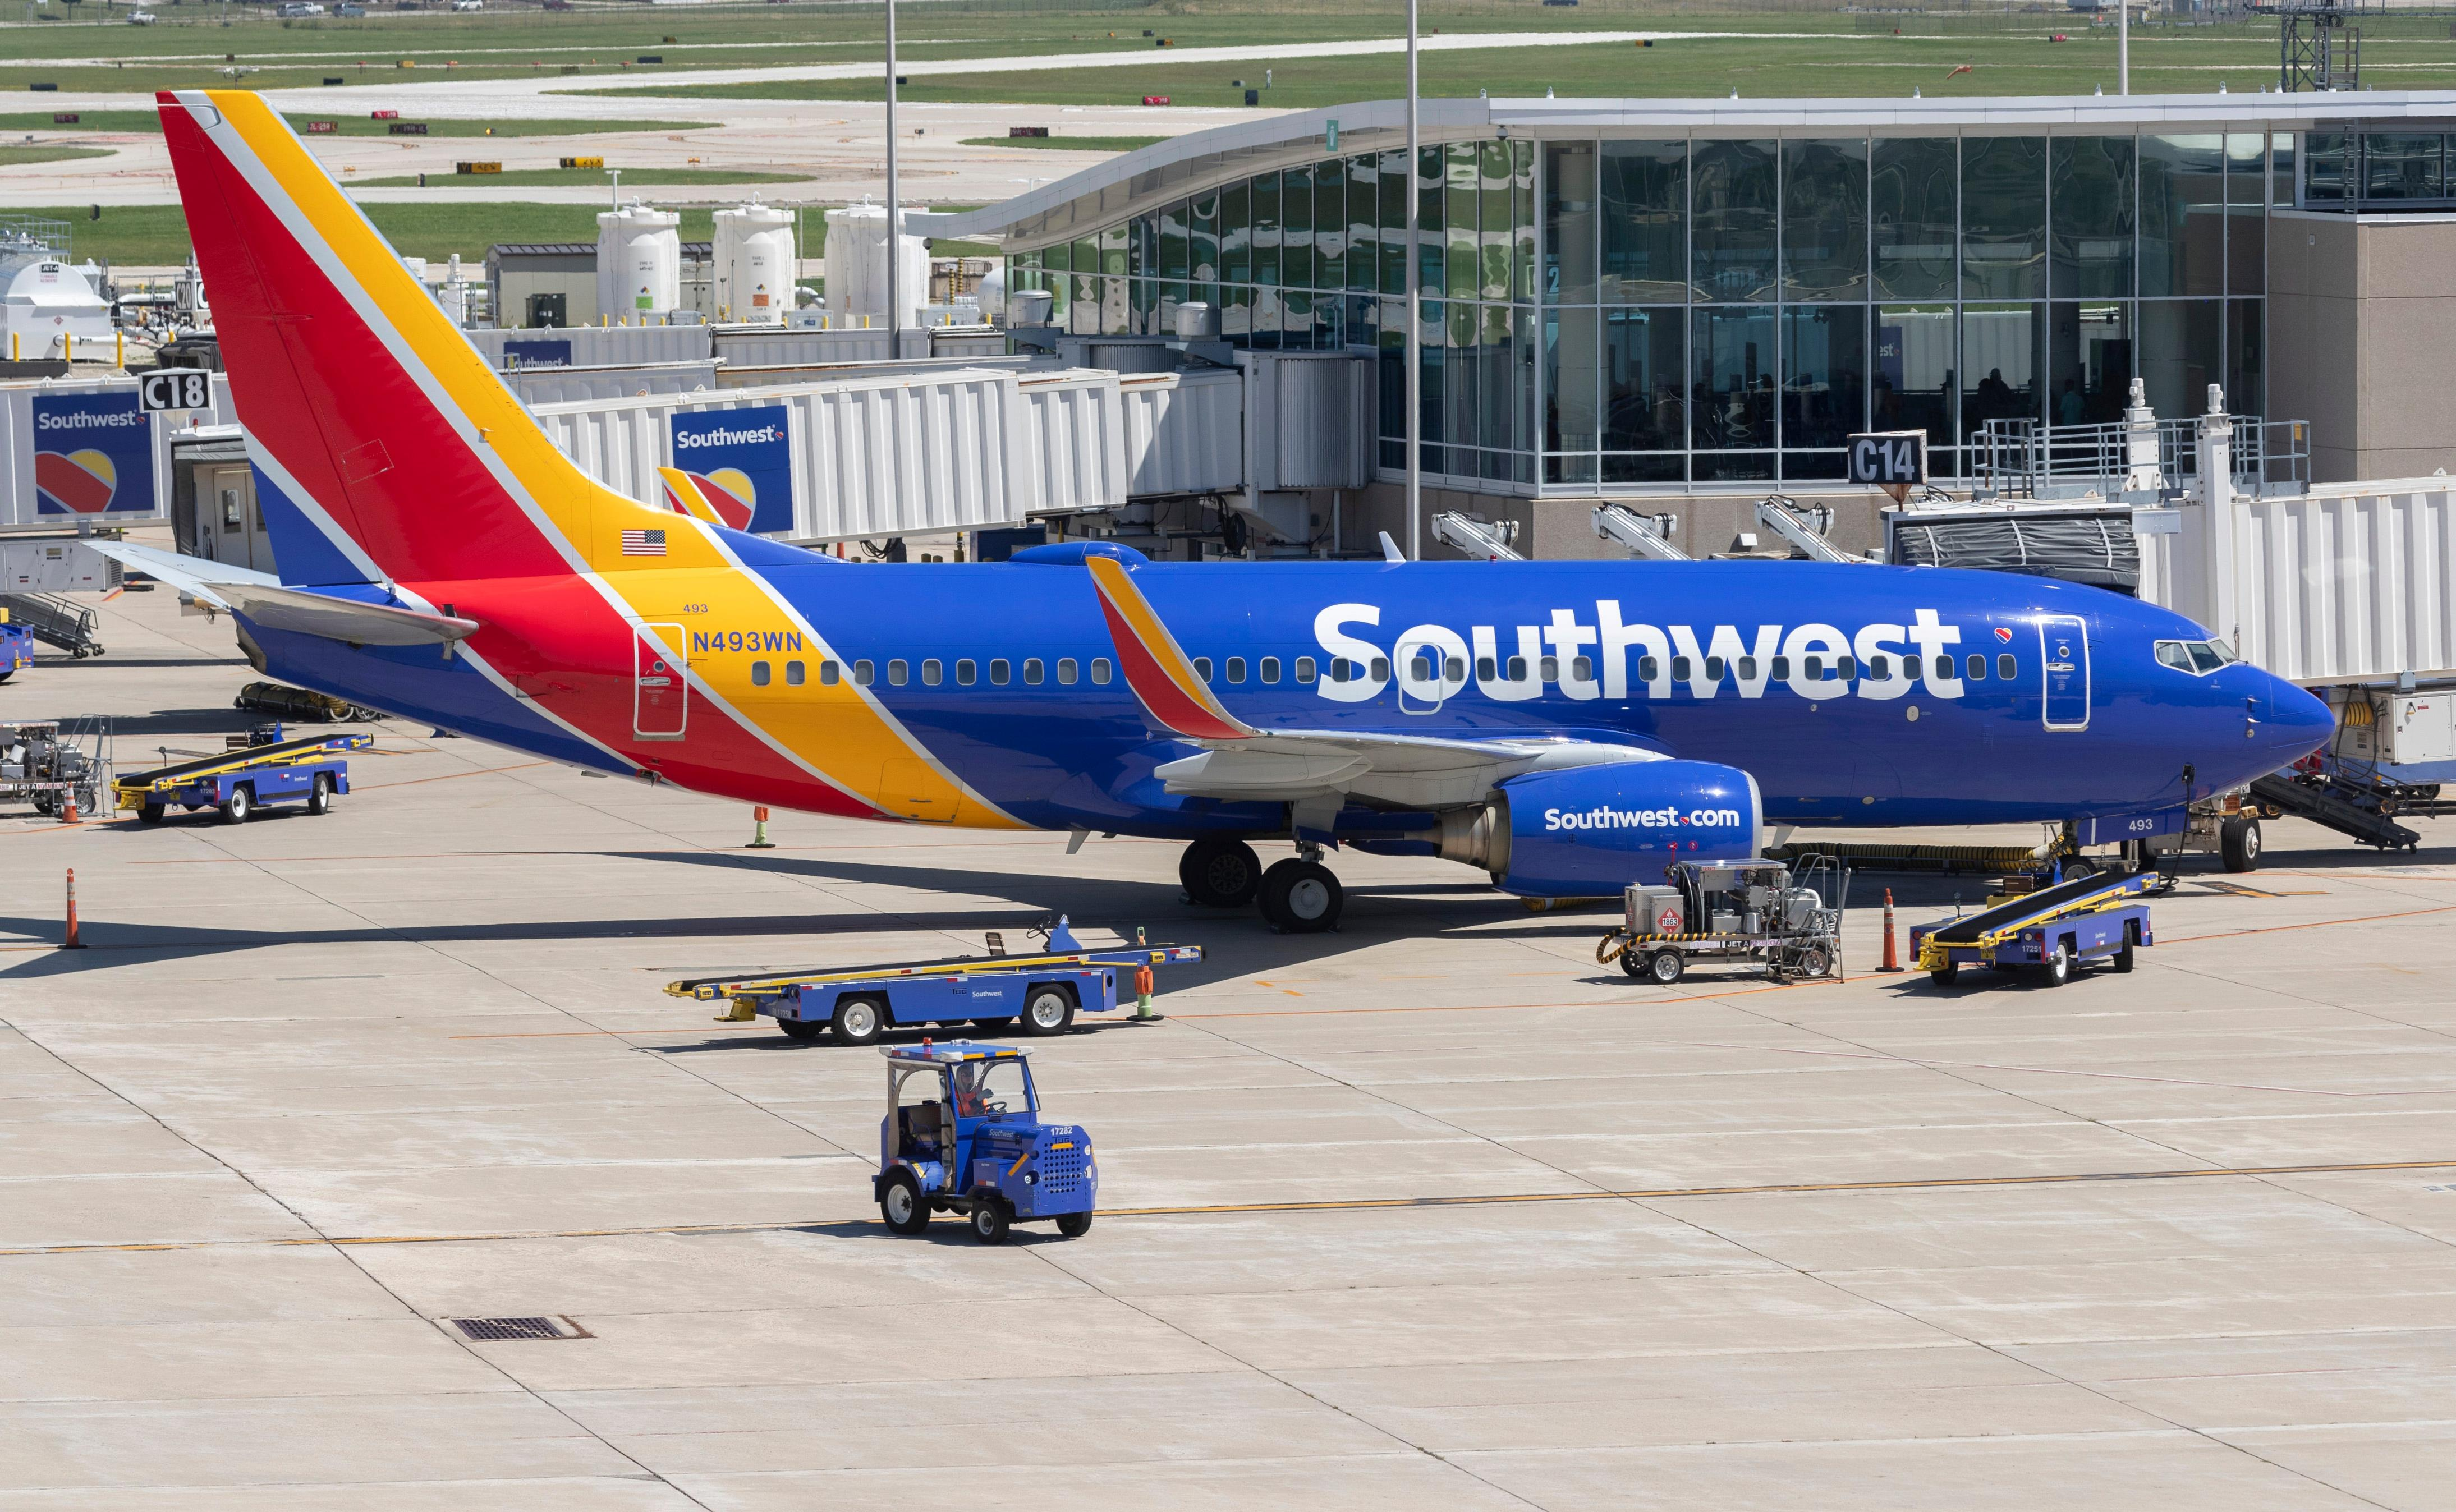 Slide 17 of 17: Baggage is loaded onto a Southwest Airlines plane Wednesday, August 12, 2020 at Mitchell Airport. in Milwaukee, Wis. The COVID-19 pandemic severely affected multiple airline companies and the travel industry as a whole.